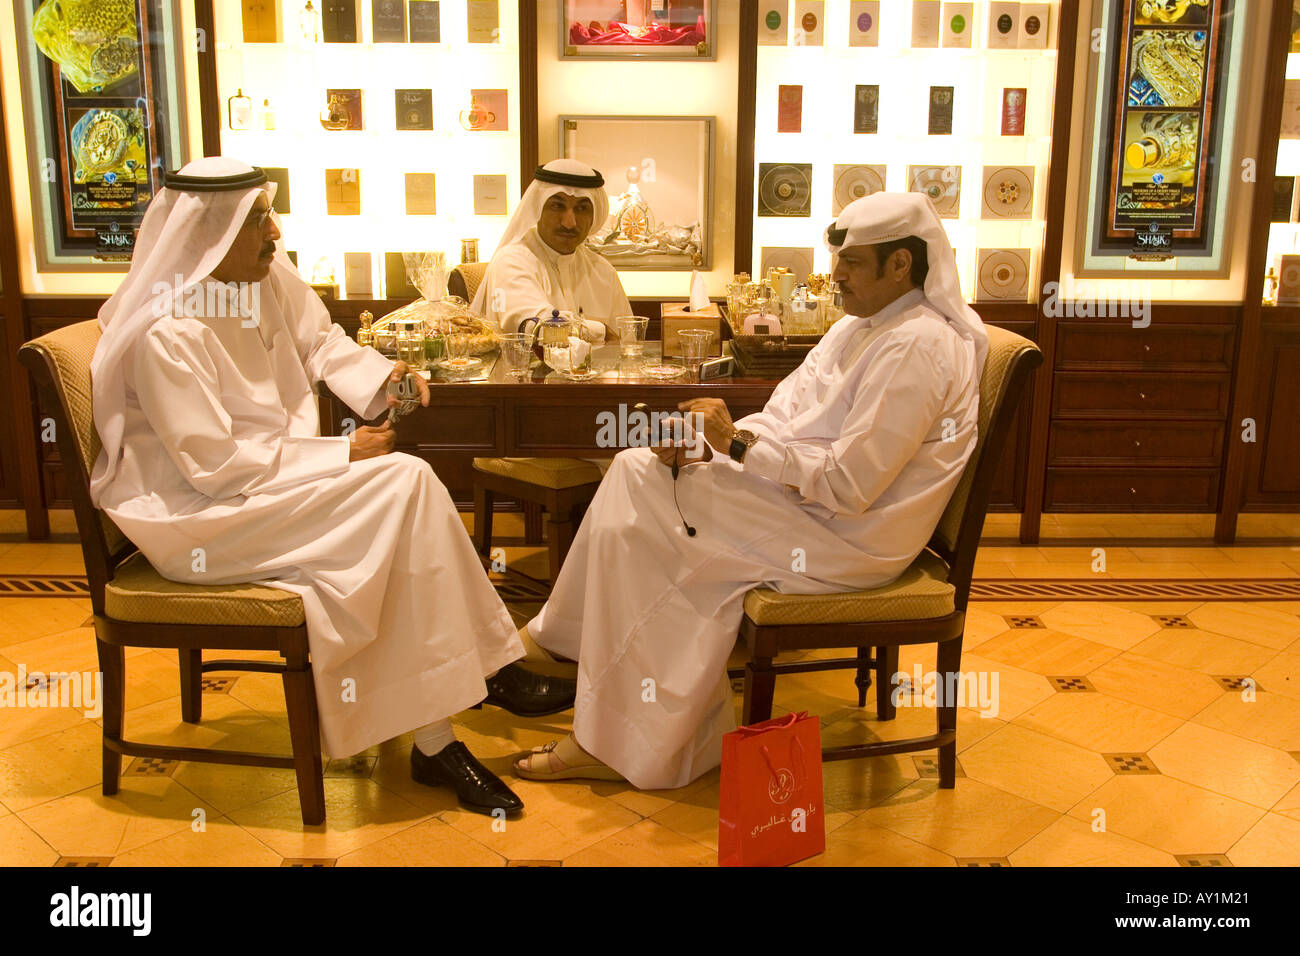 b3097e344 Arab men with traditional dress sitting at perfume shop in Deira city  centre shopping mall Dubai United Arab Emirates